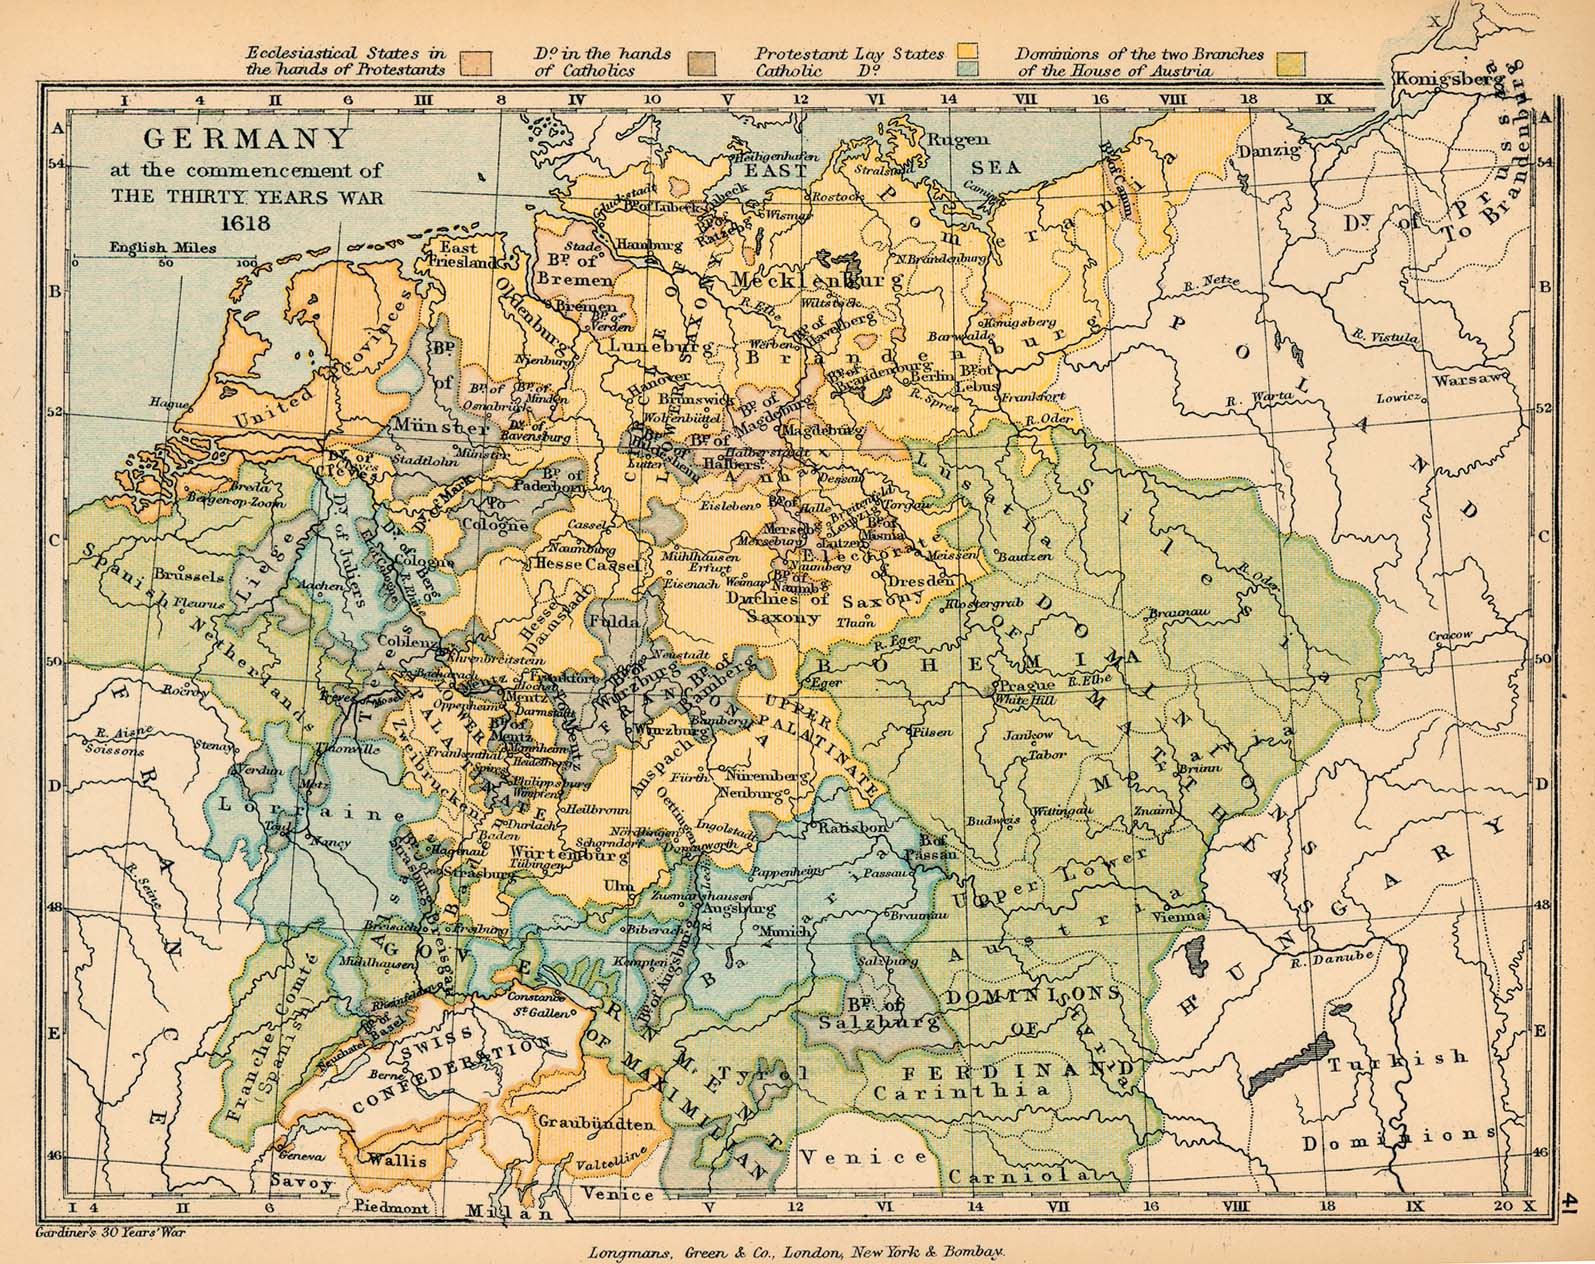 Map of Germany at the commencement of the Thirty Years War 1618